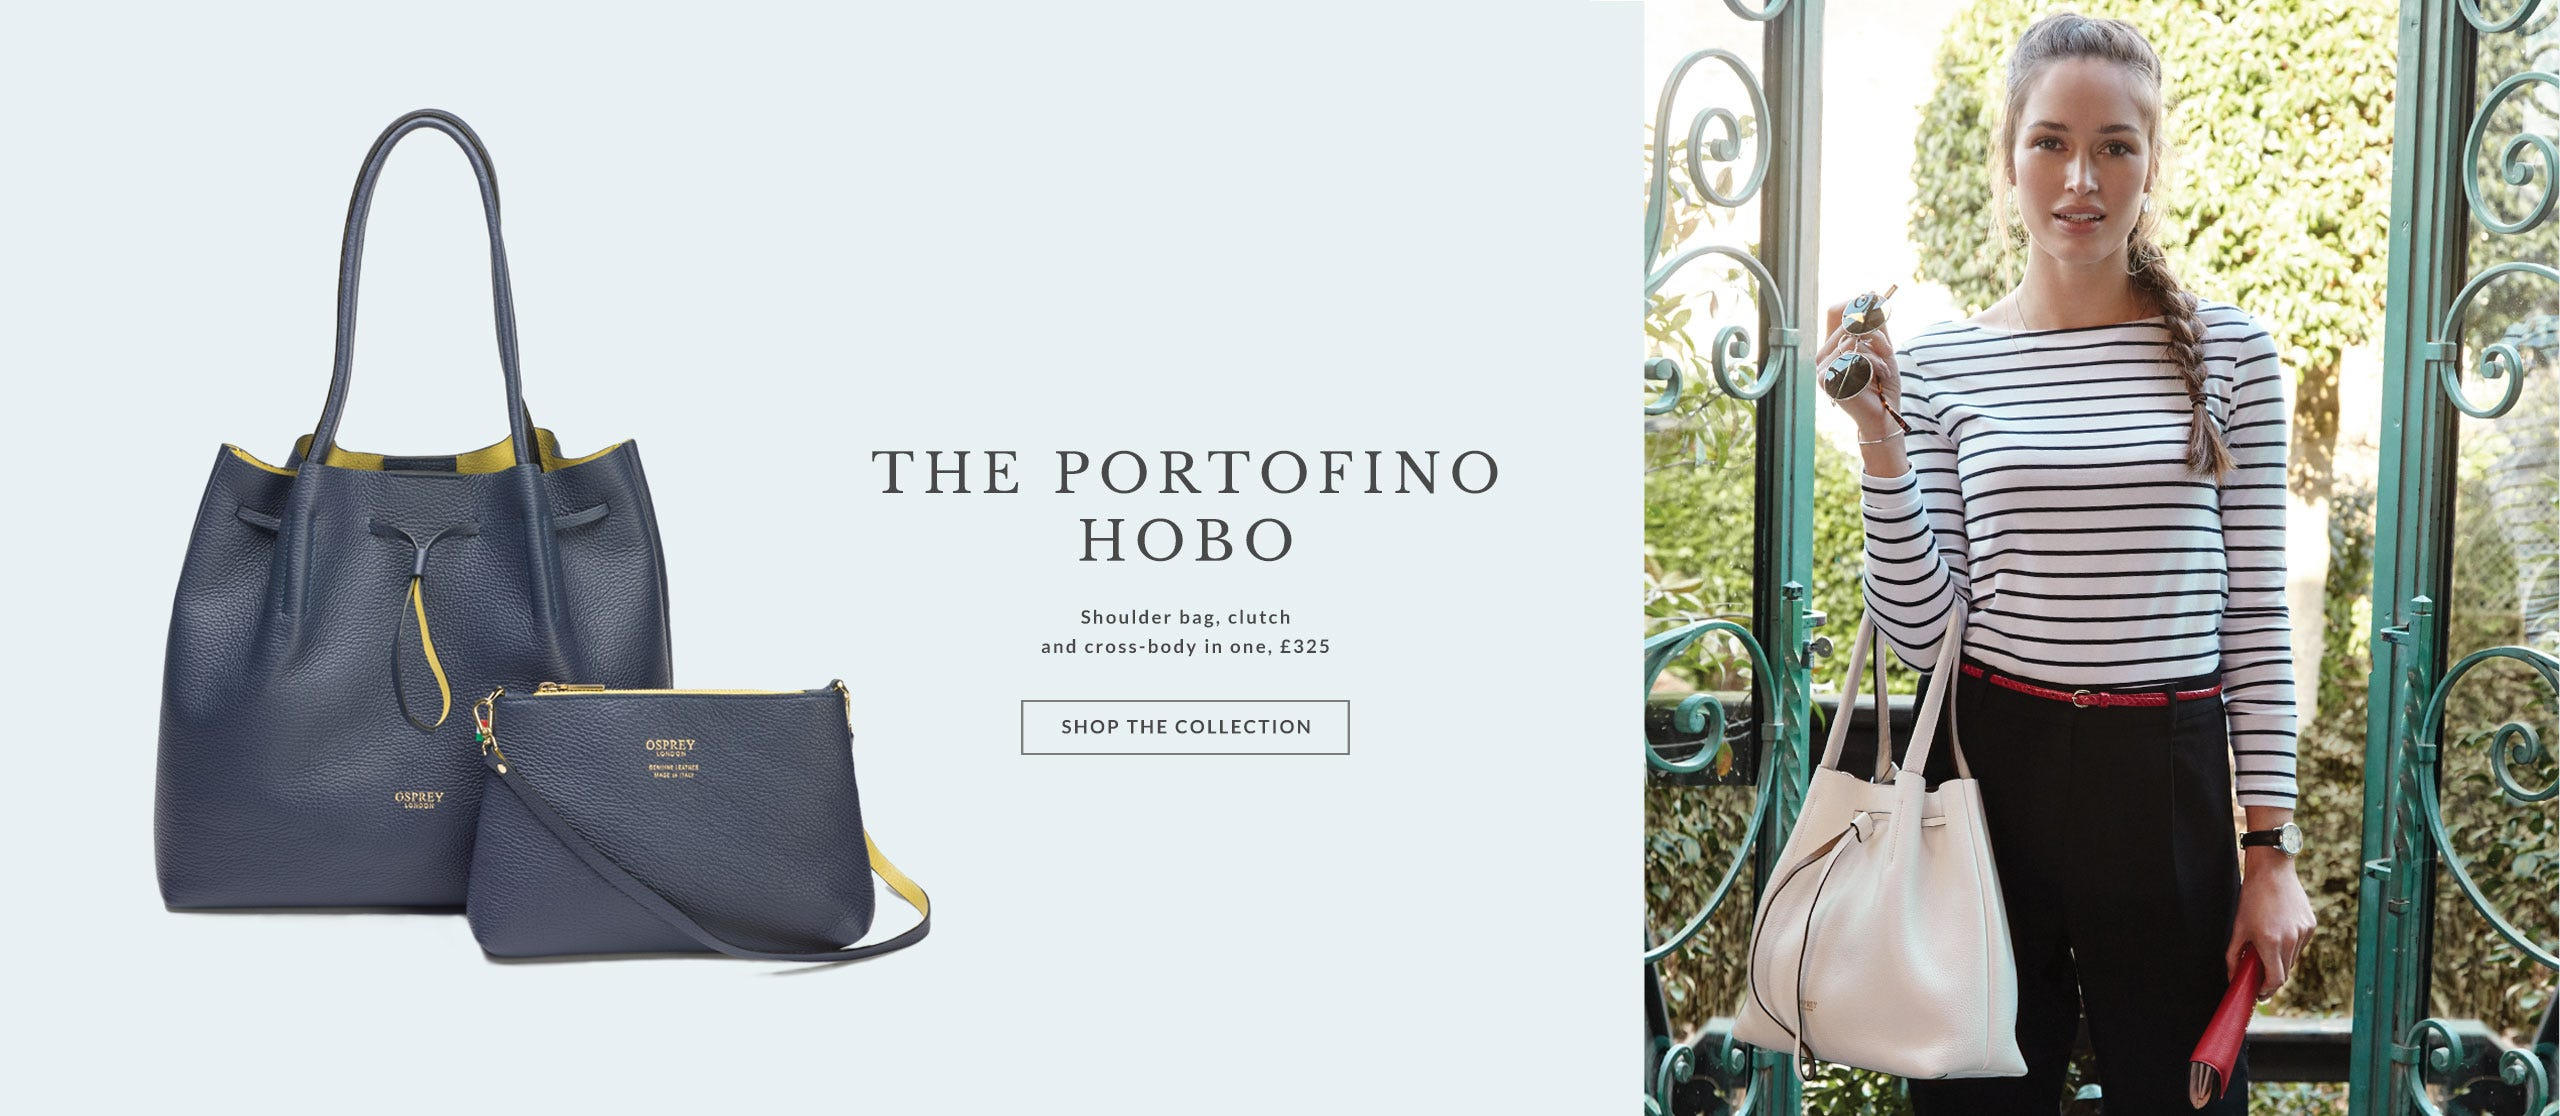 THE PORTOFINO COLLECTION